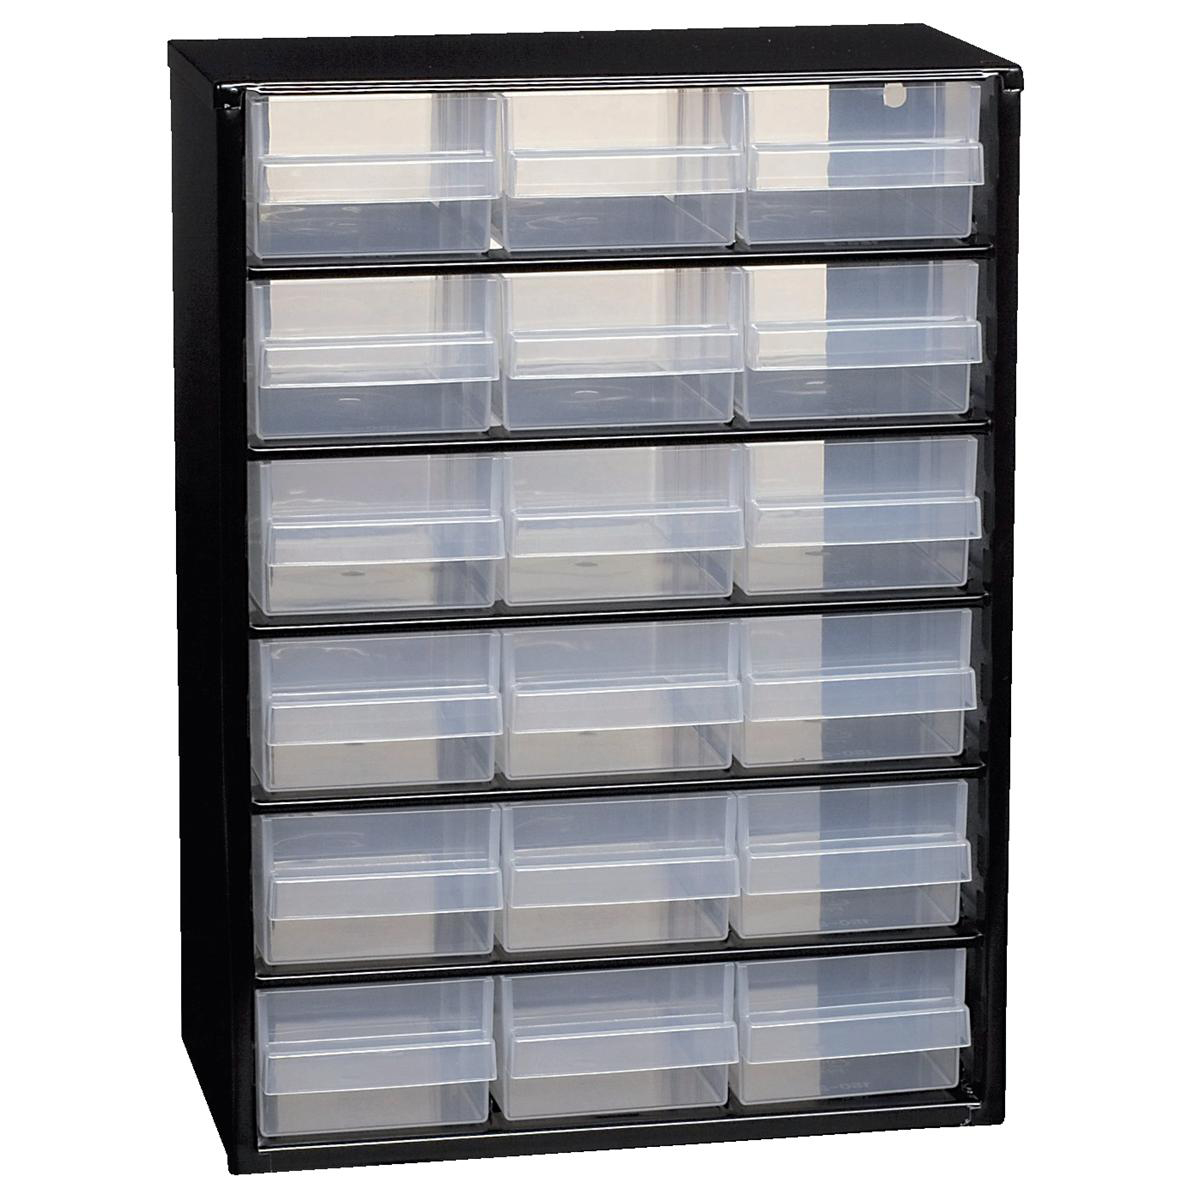 Industrial cabinets or drawers or shelving Raaco Steel Cabinet 18 Polypropylene Drawers Black Ref 132022